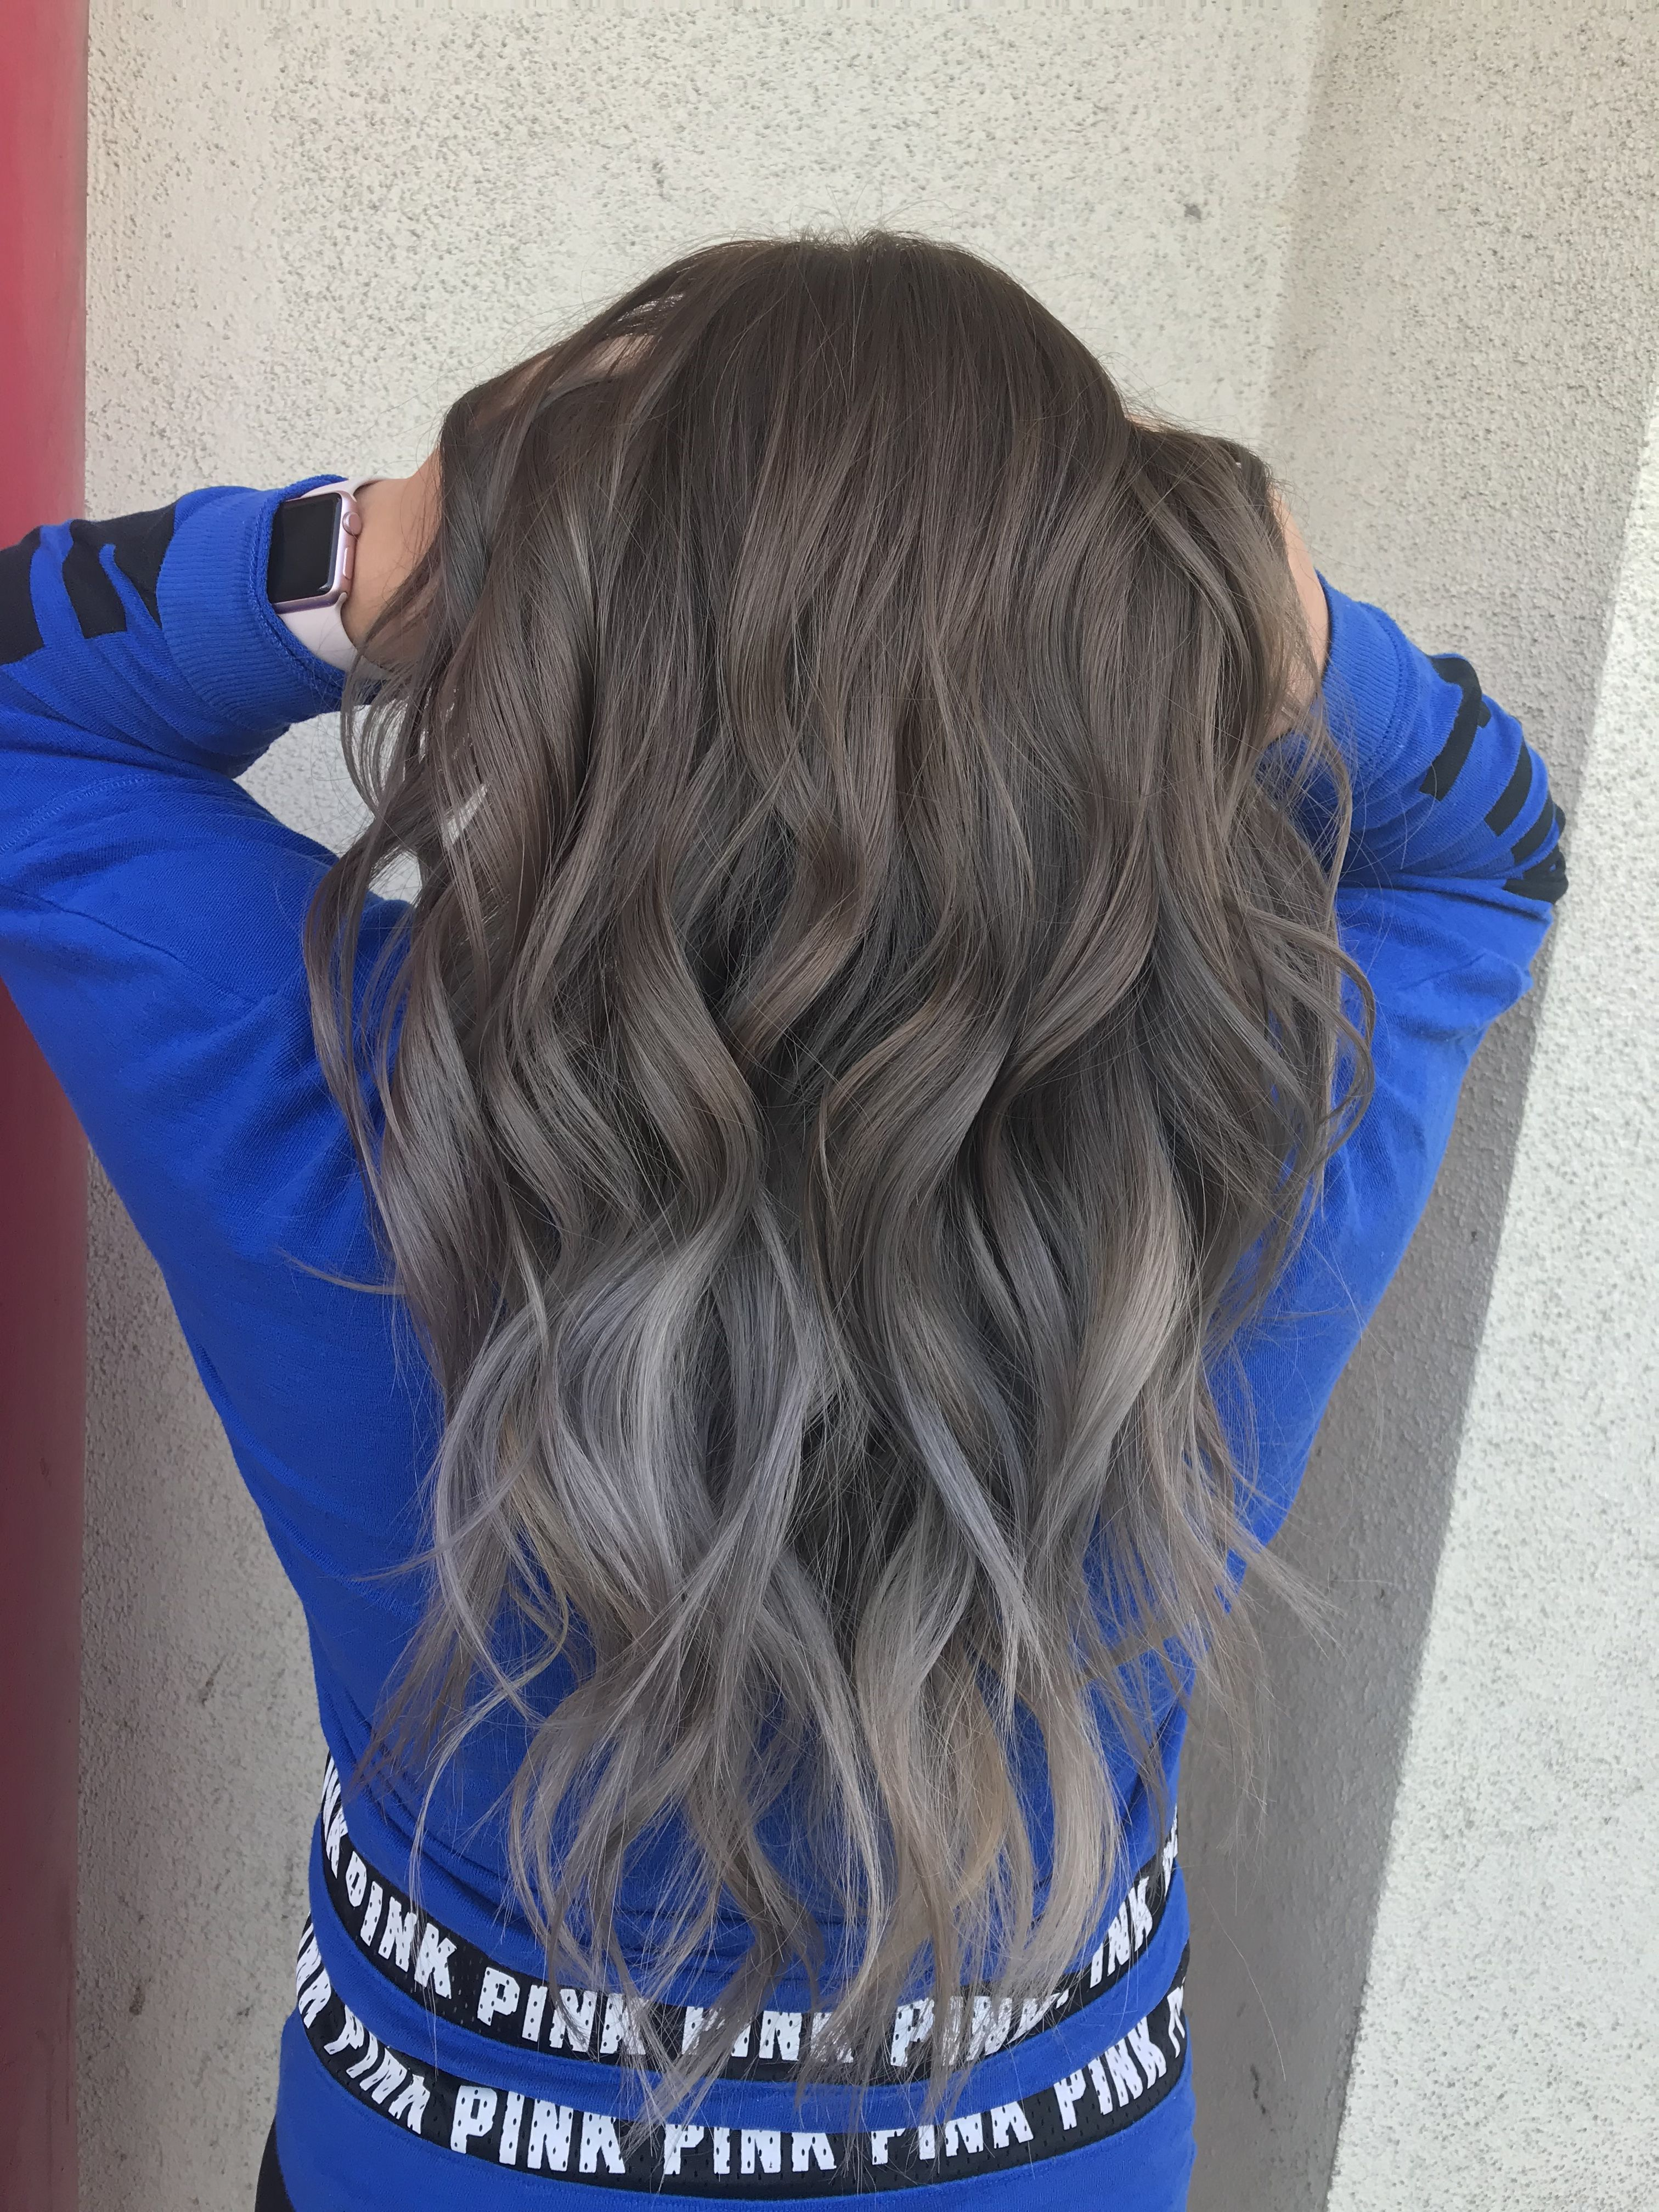 Lace Frontal Wigs For Women Gray Wigs Remy Curly Hair Cheap Peruvian Hair Wholesale